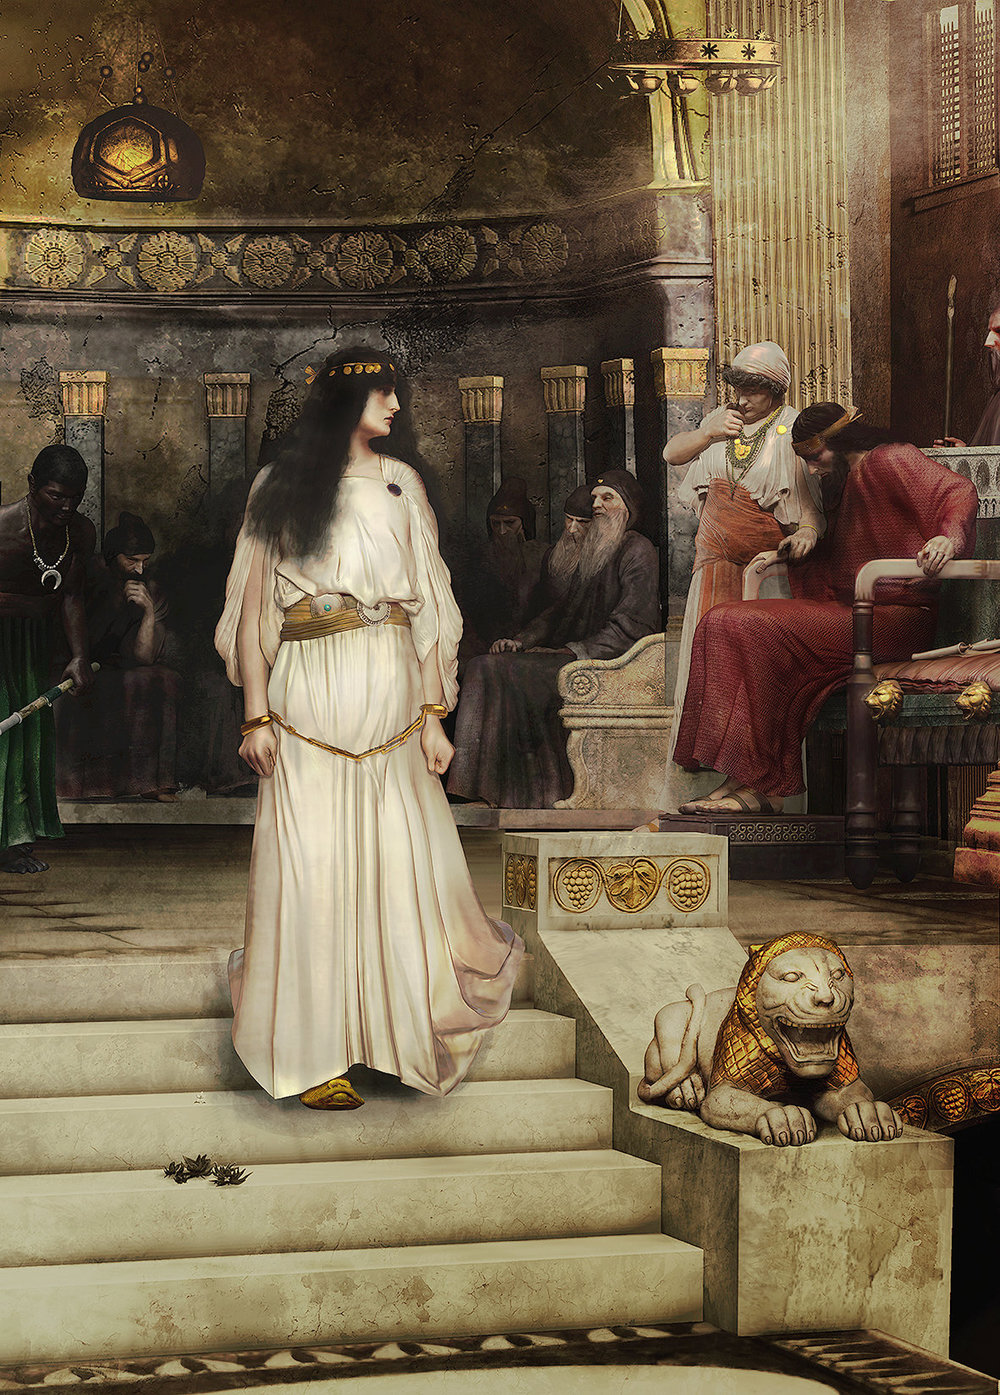 The trial of Mariamne I, the last member of the Hasmonean dynasty